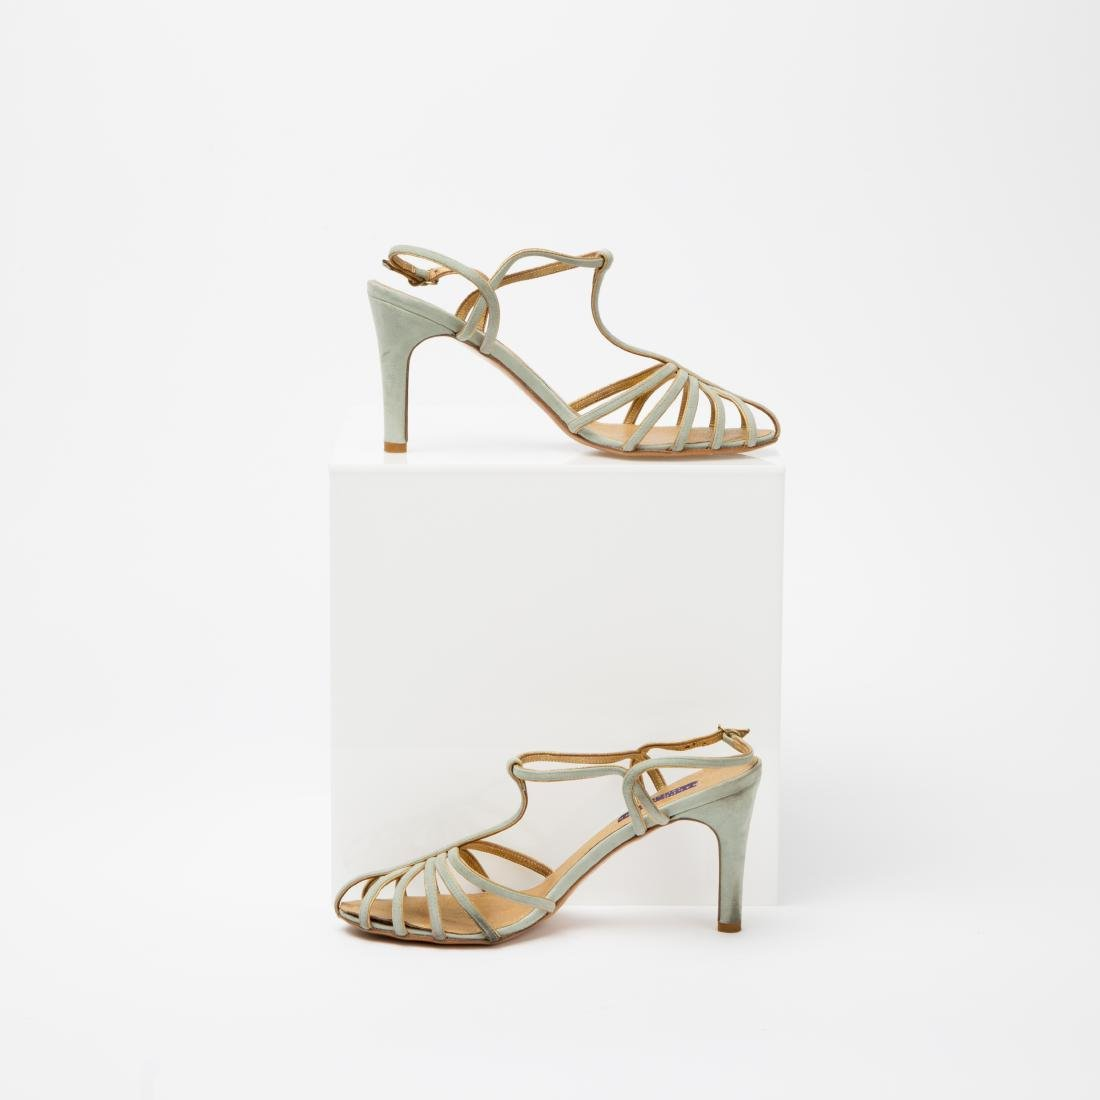 TWO PAIRS OF RALPH LAUREN SANDALS SIZES 9, 9.5